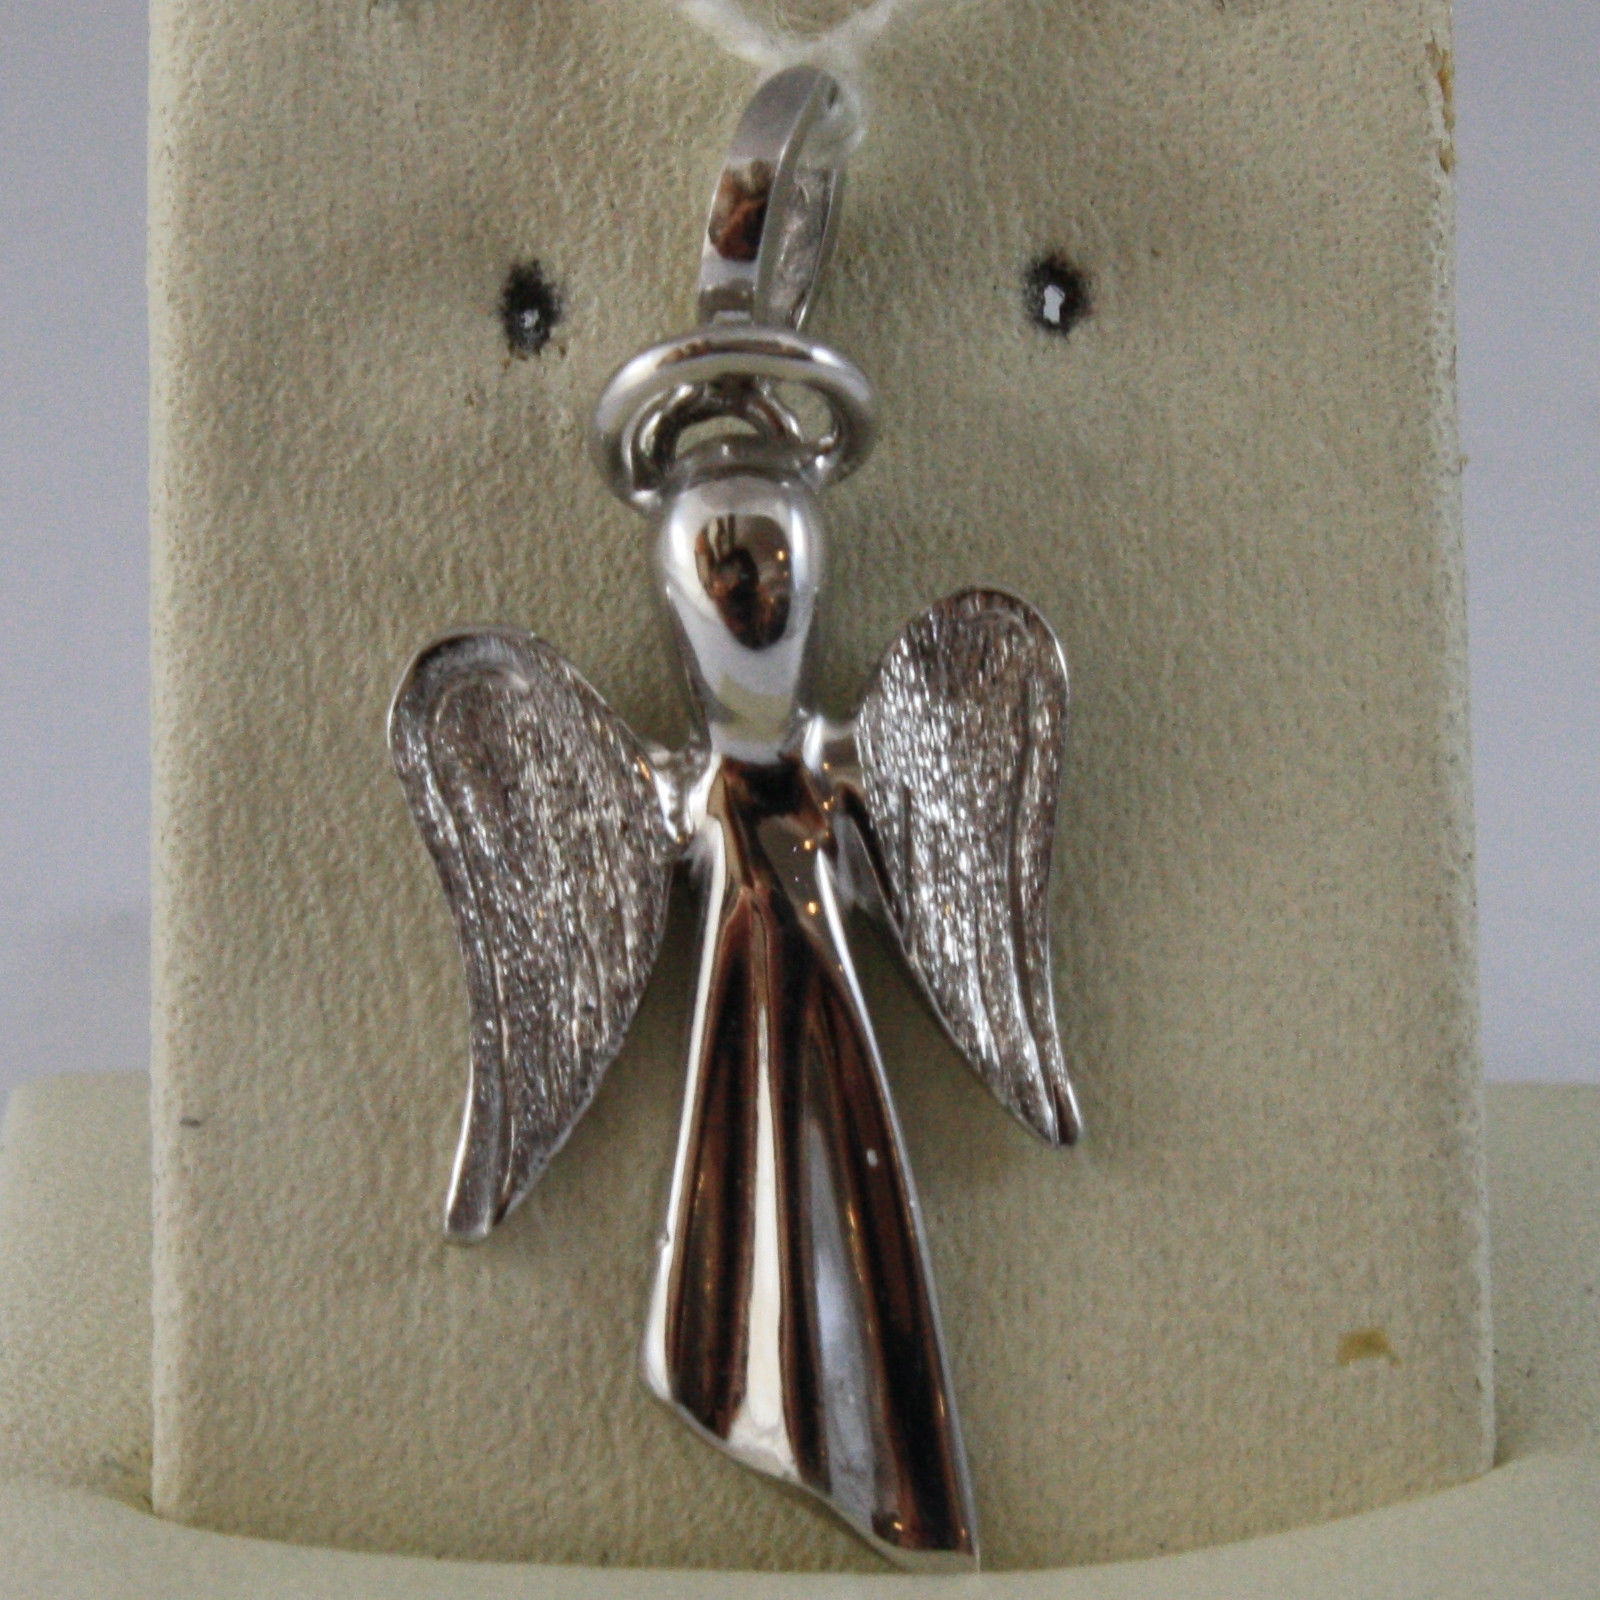 SOLID 18K WHITE GOLD PENDANT, POLISHED AND SATIN, GUARDIAN ANGEL MADE IN ITALY